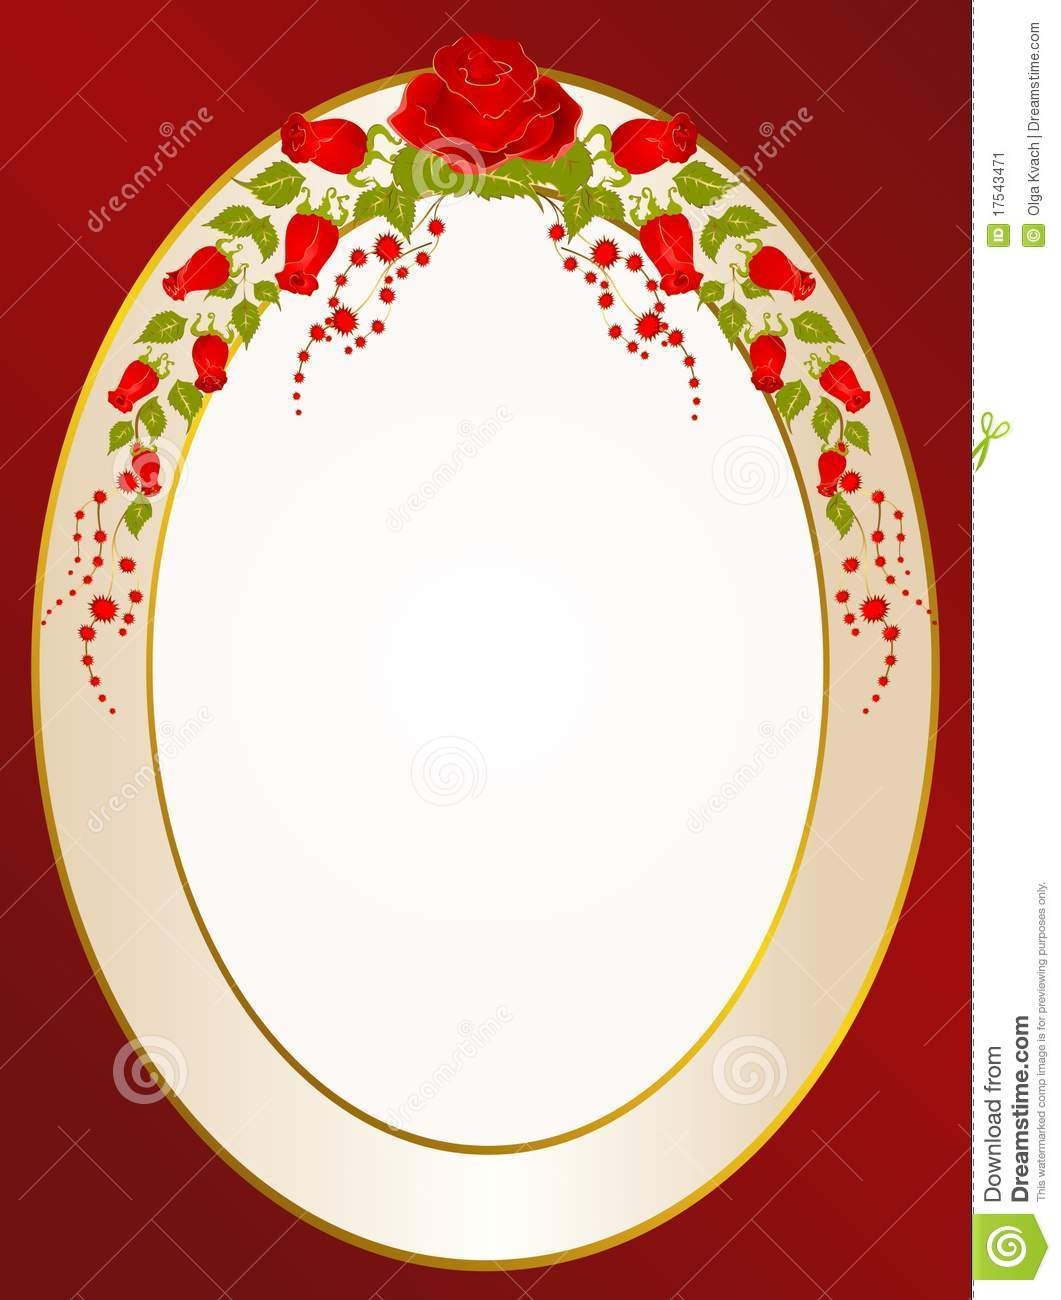 Beauty In Frame: Beautiful Frame From Roses Stock Image